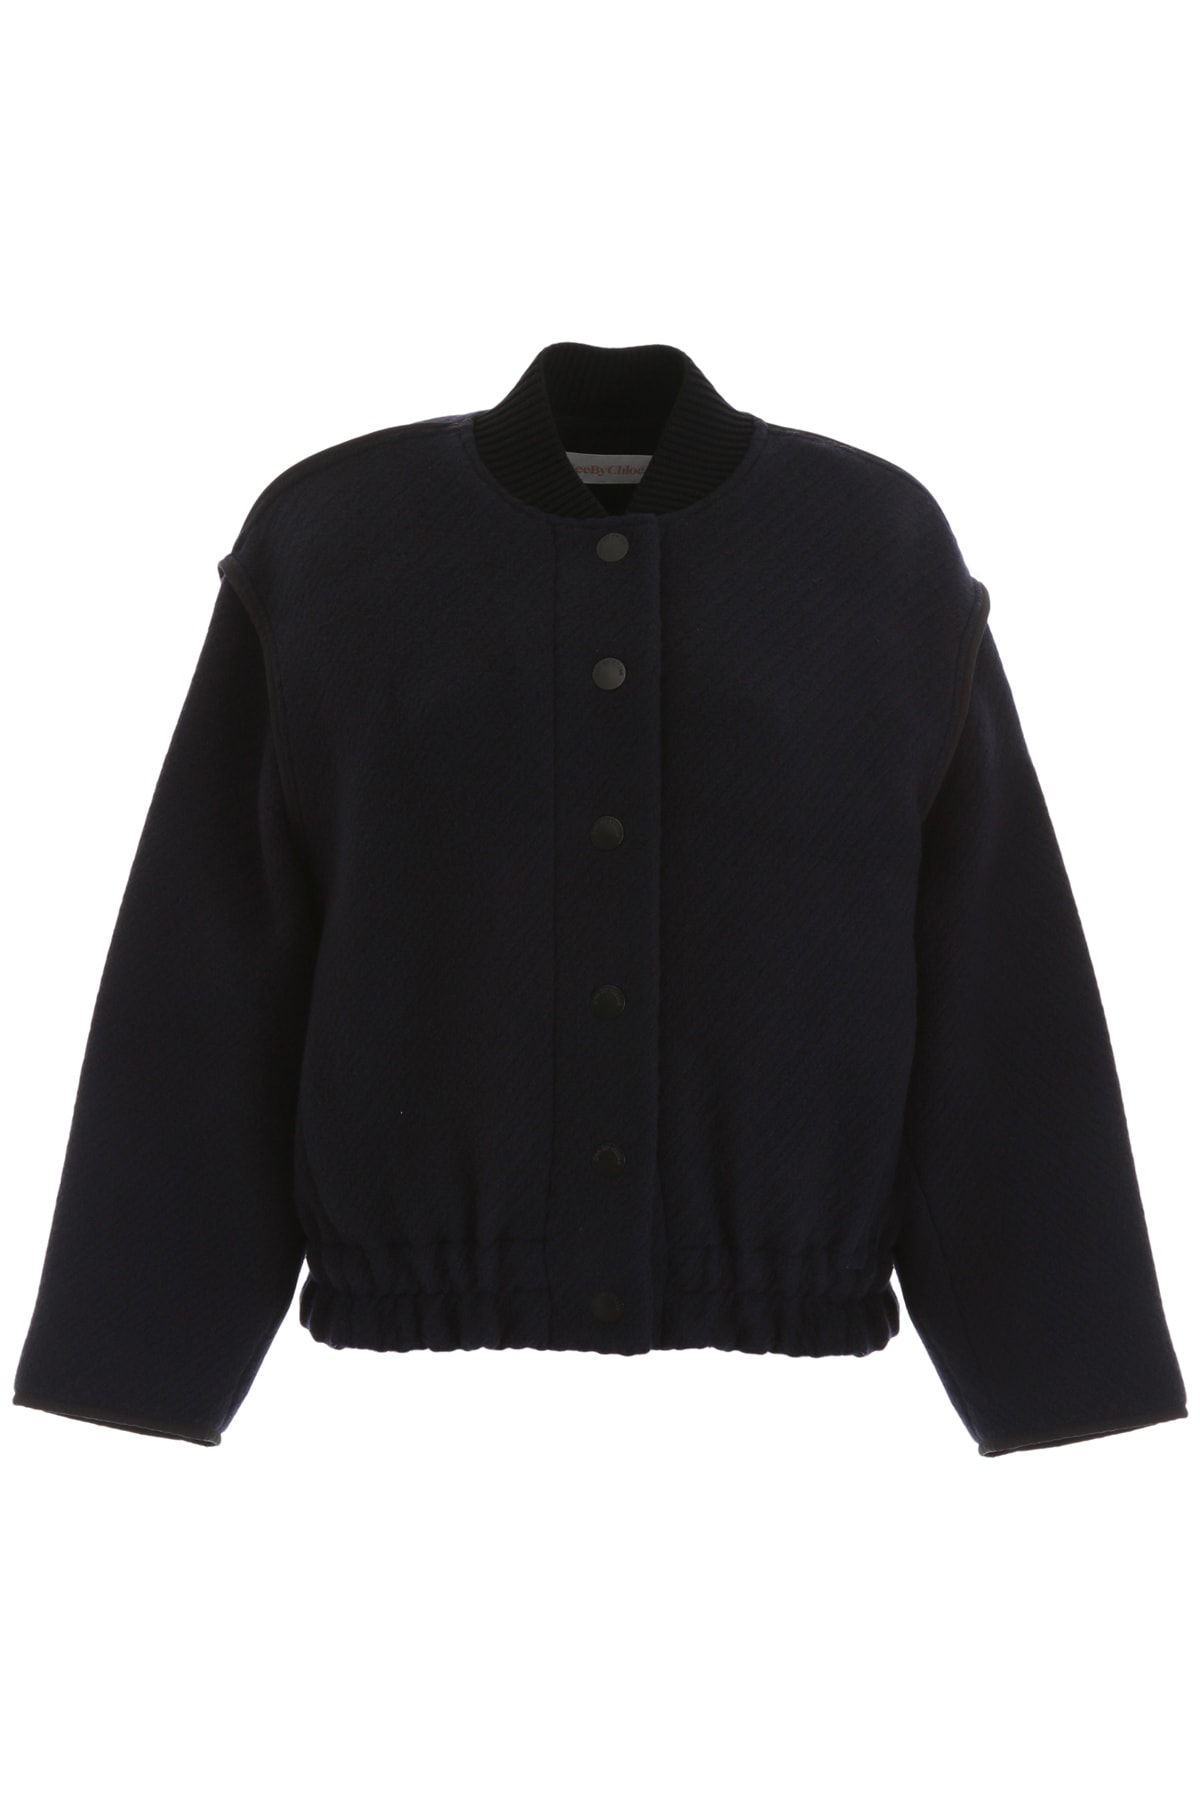 See by Chloé Wool Bomber Jacket